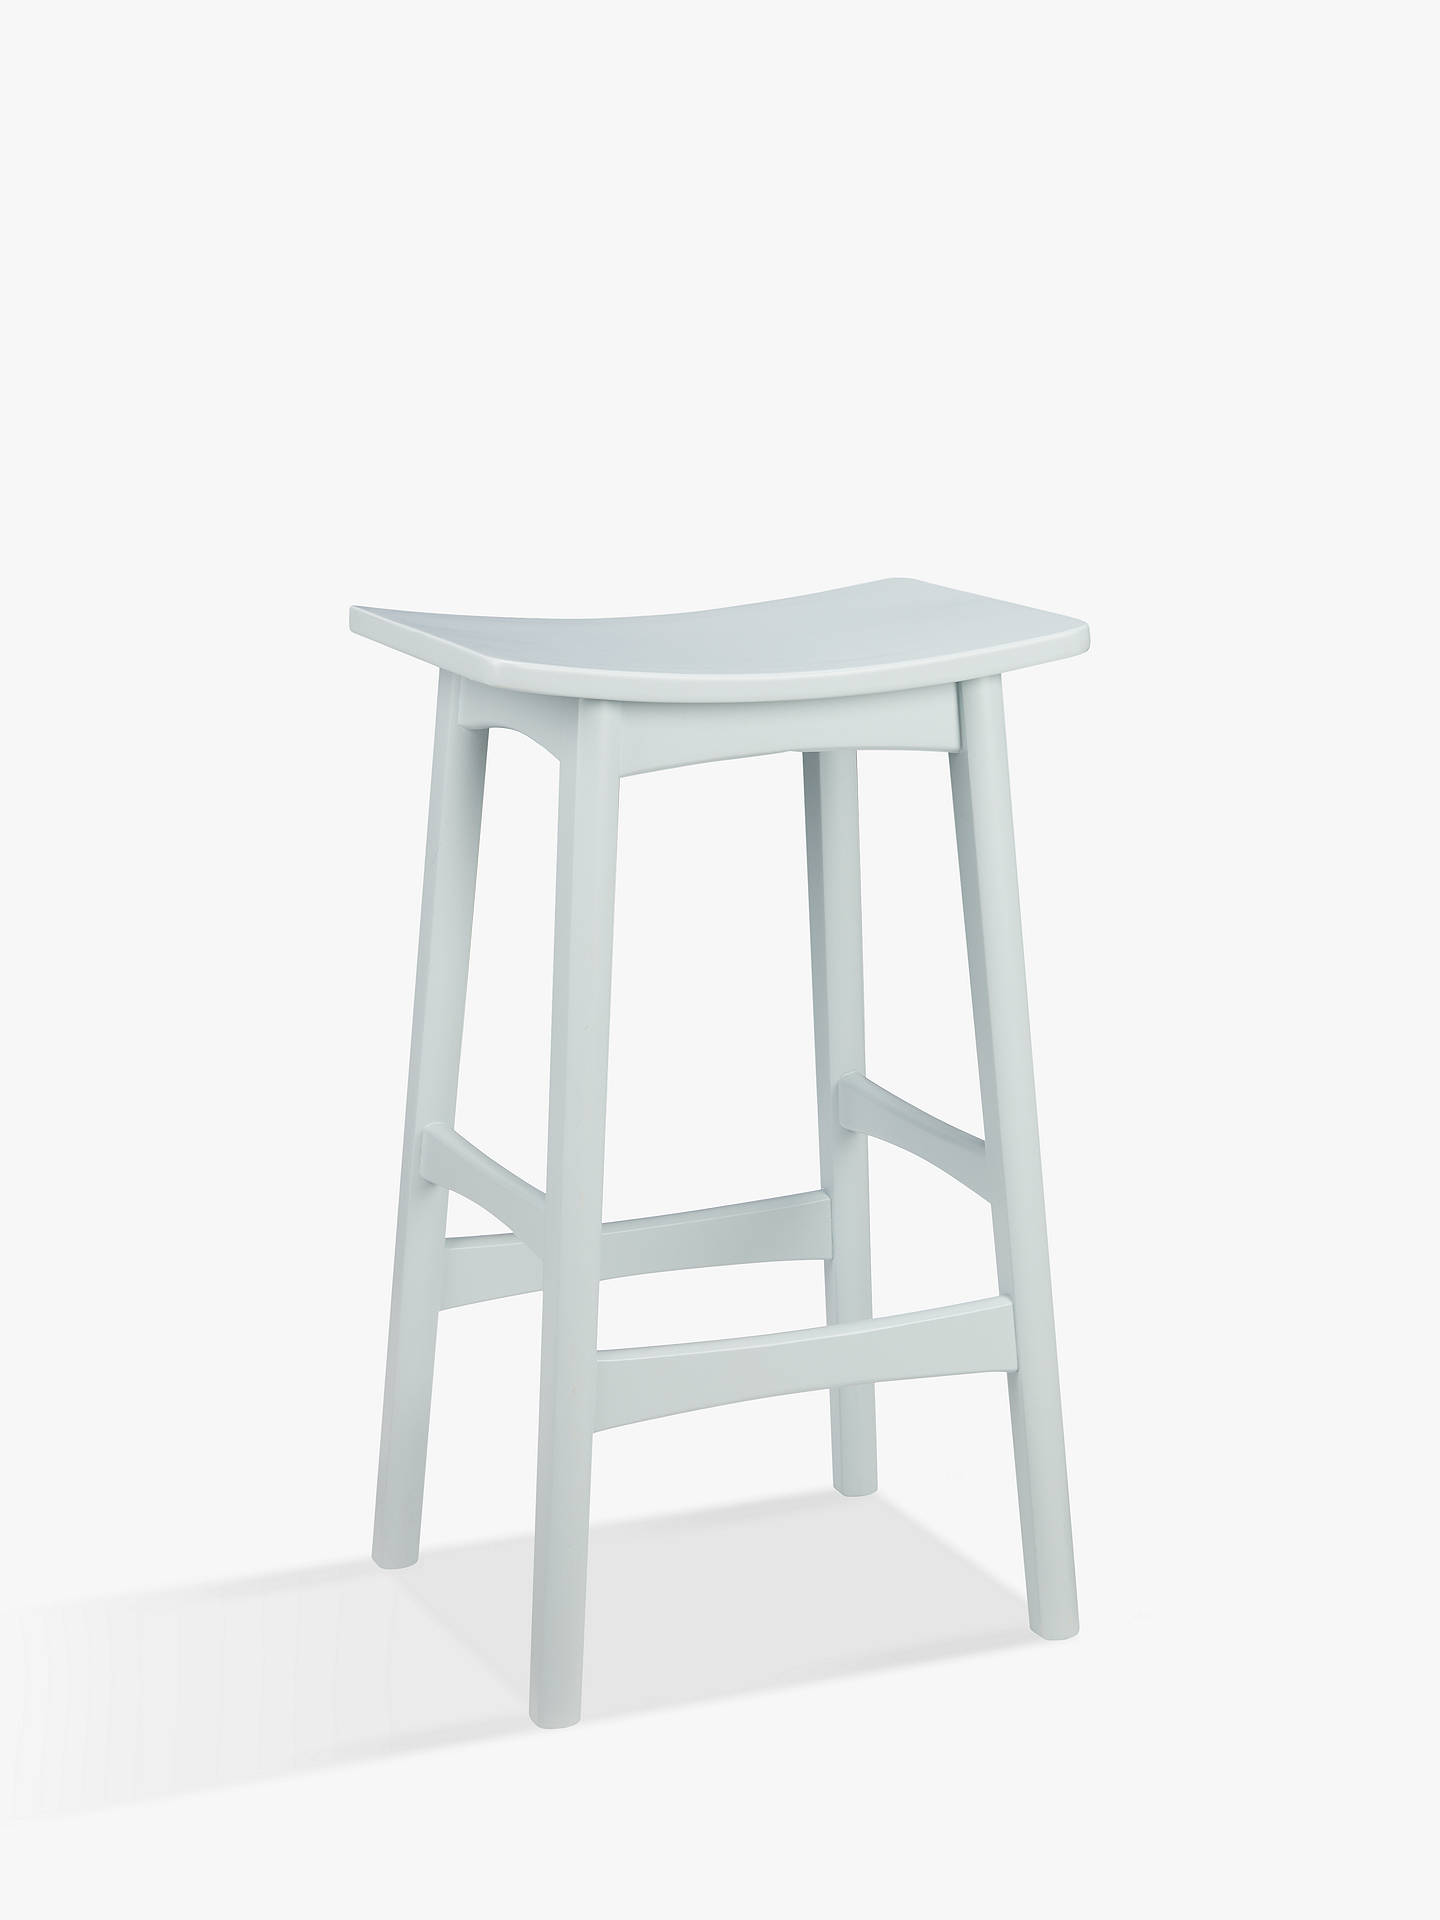 Kitchen Stools Uk John Lewis Wow Blog